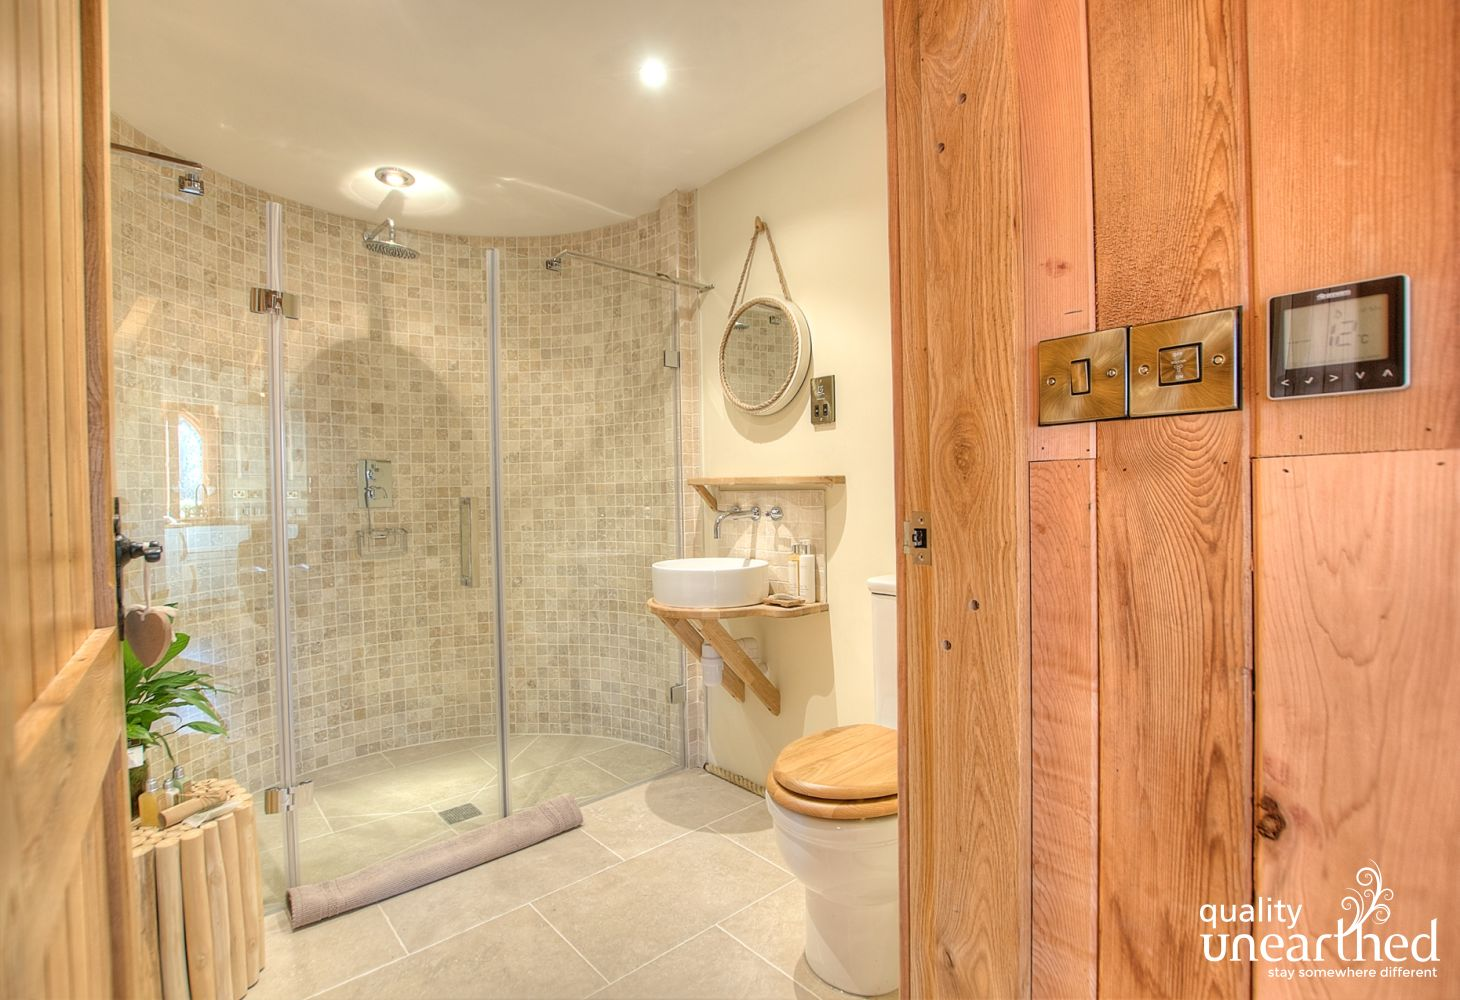 A 5 star treehouse shower room with an extra-large walk in shower and 5 star look